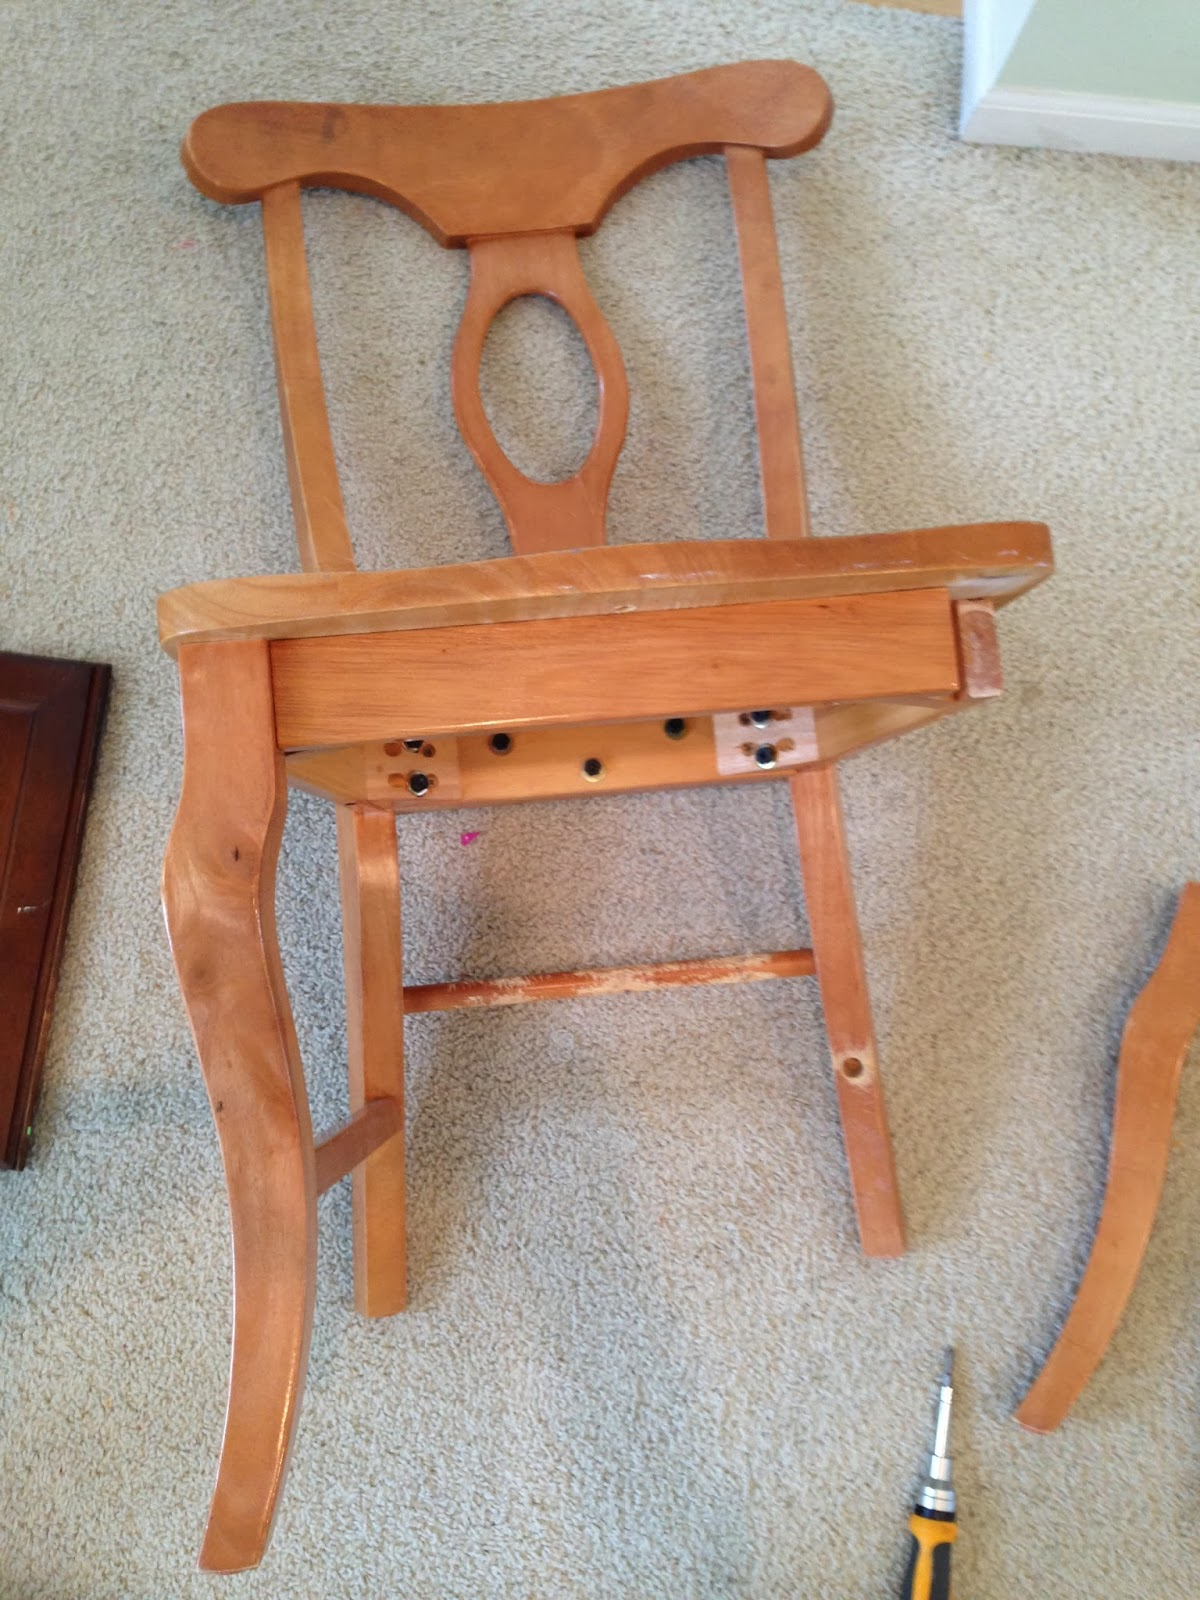 thrifty treasures salvaged chair legs to bench. Black Bedroom Furniture Sets. Home Design Ideas